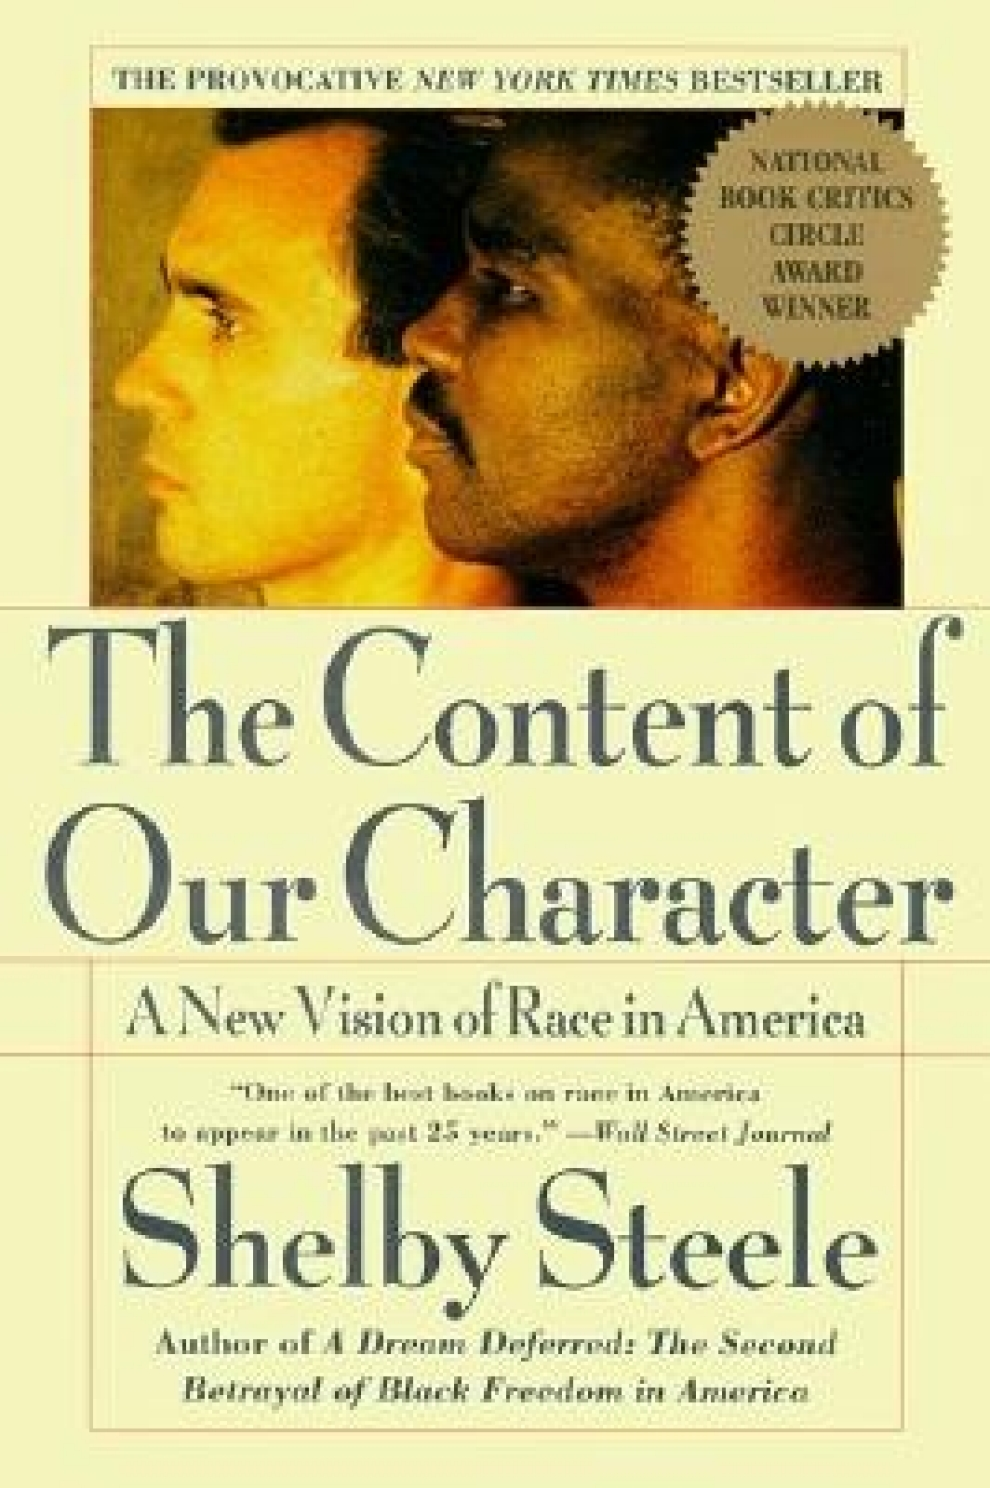 shelby steele on being black and middle class essay  shelby steele on being black and middle class essay